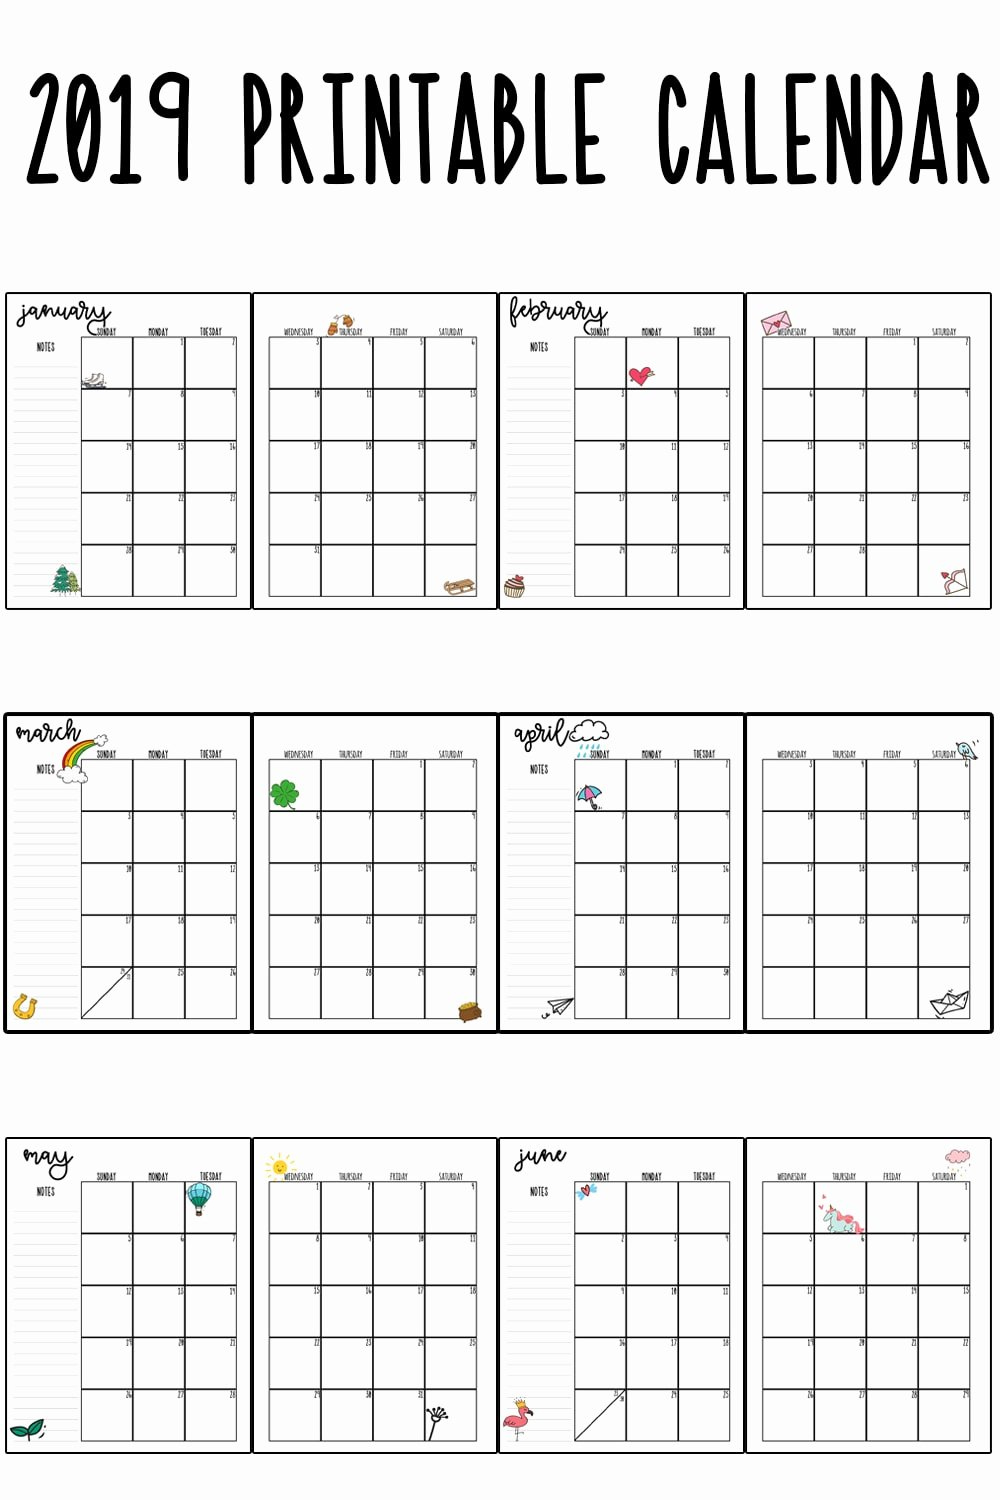 Monthly Calendar Template 2019 Best Of 2019 Printable Calendar